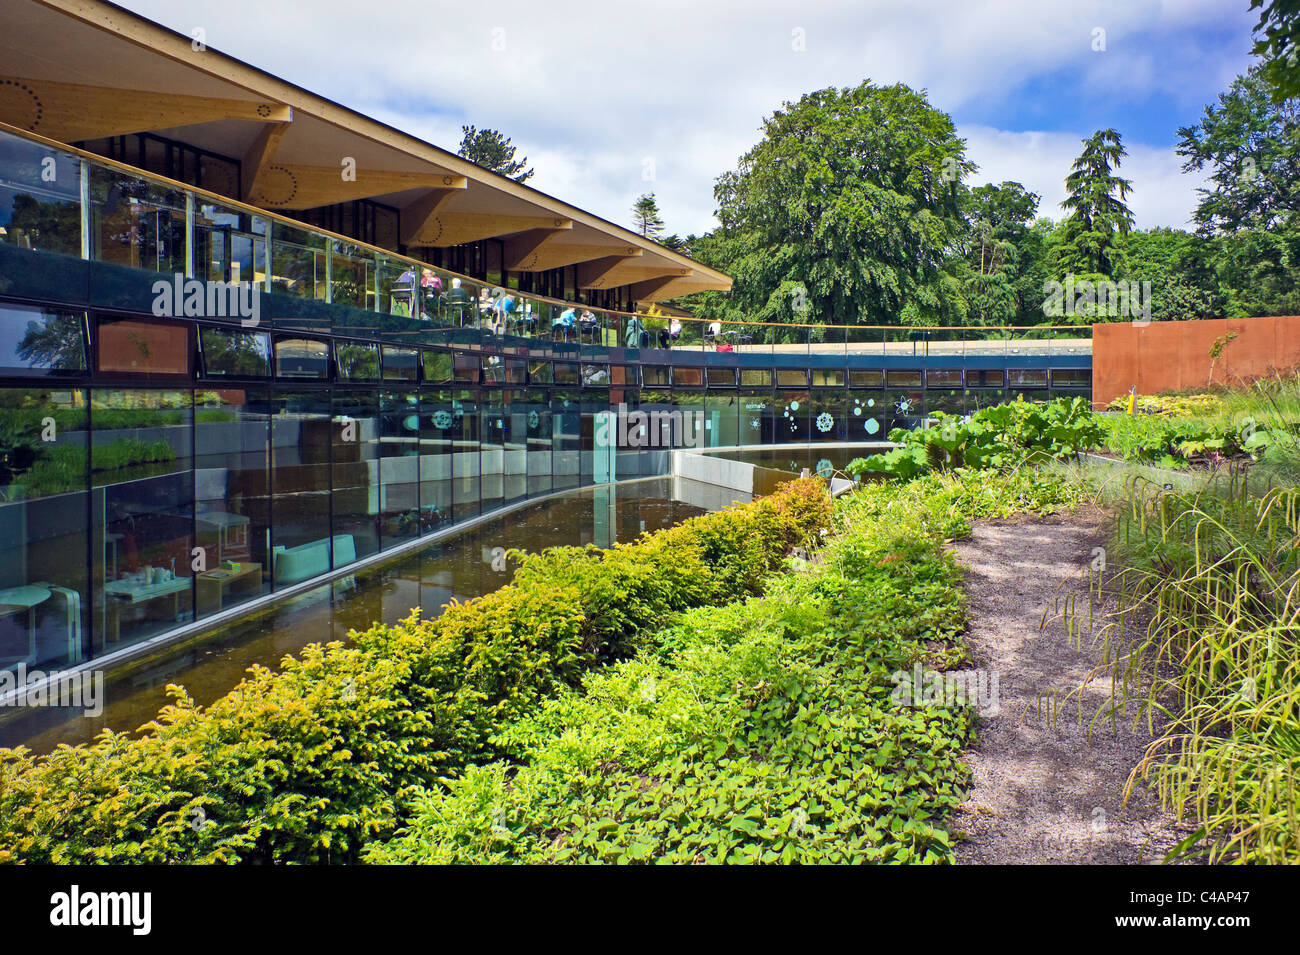 The John Hope Gateway and restaurant in the Royal Botanic Garden Edinburgh - Stock Image